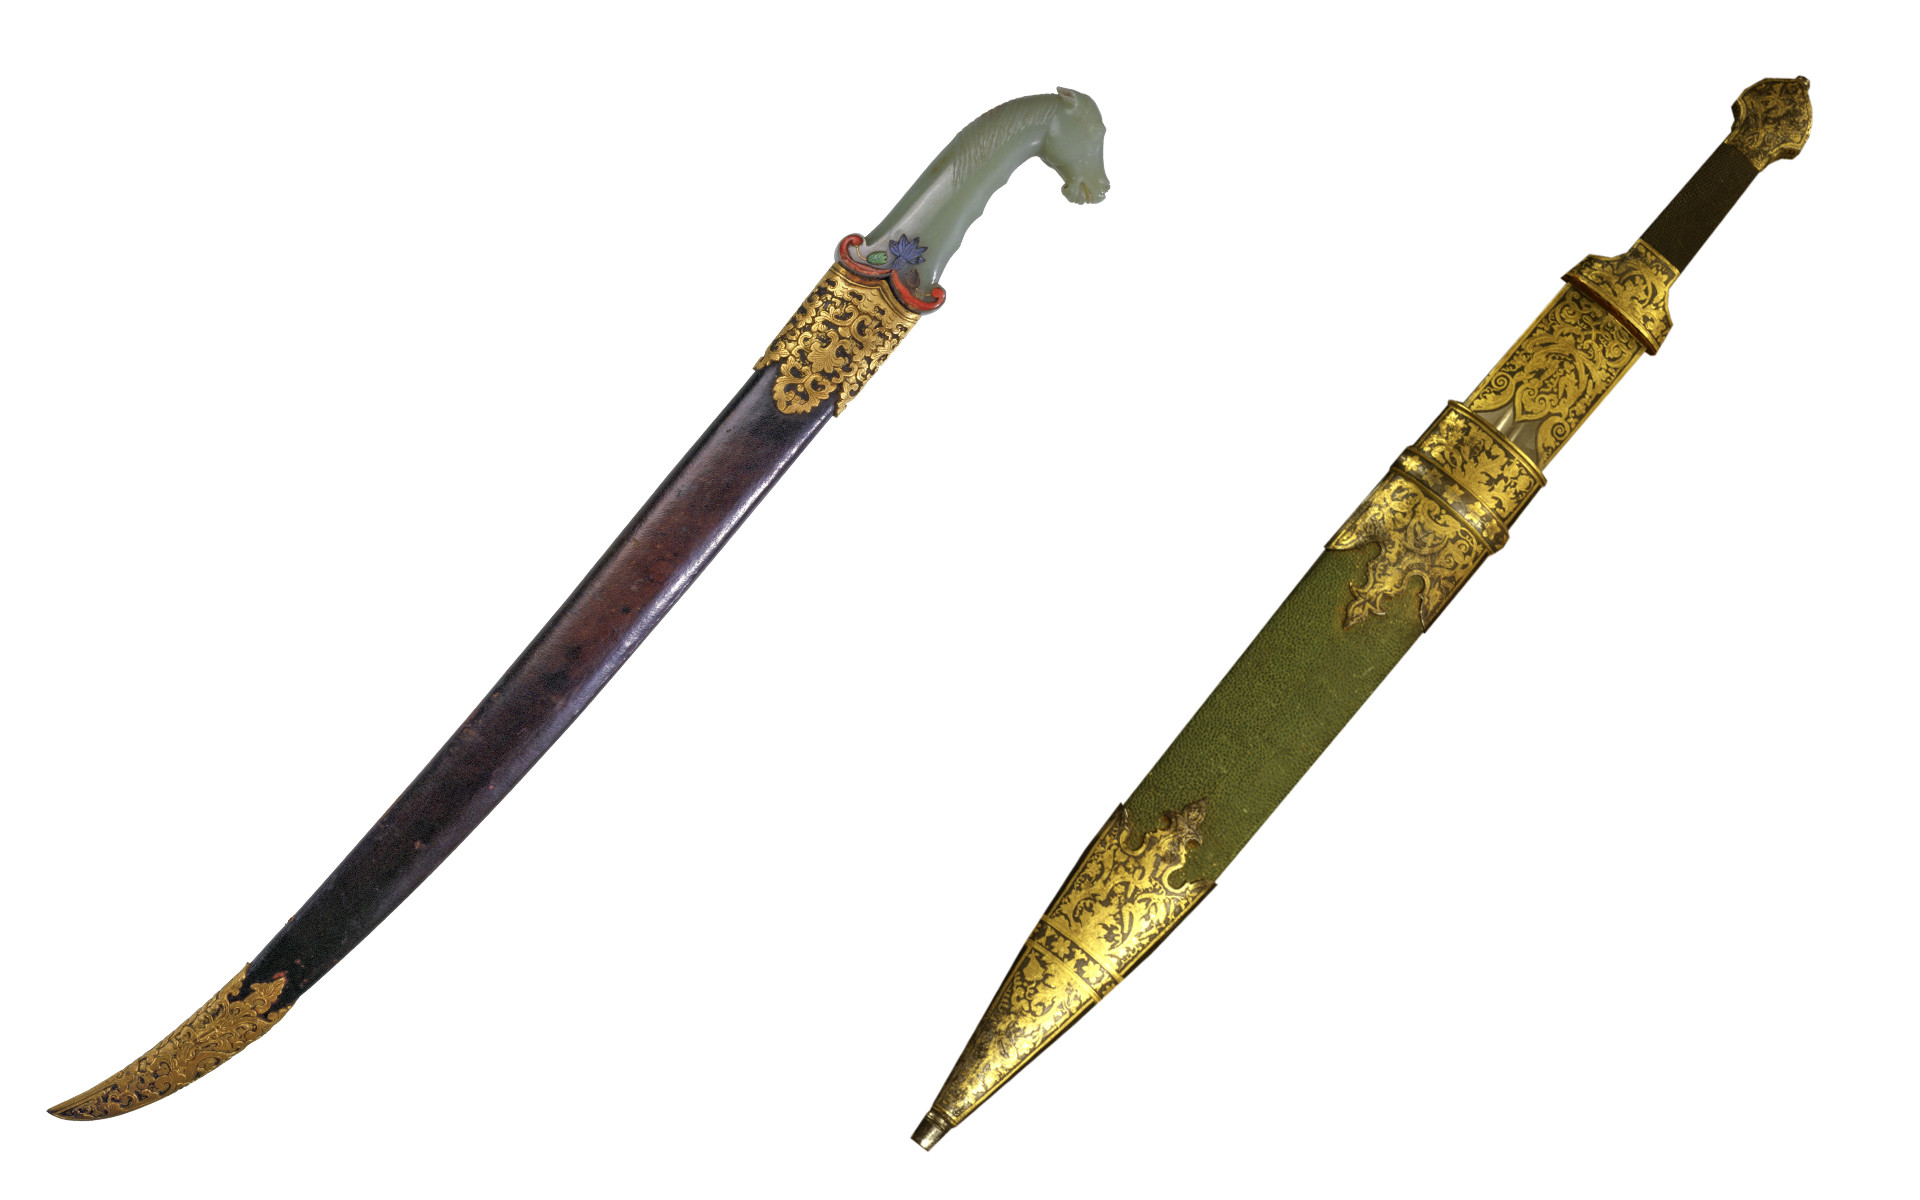 Left: Chinese dagger of the Quing era, the Palace Museum.